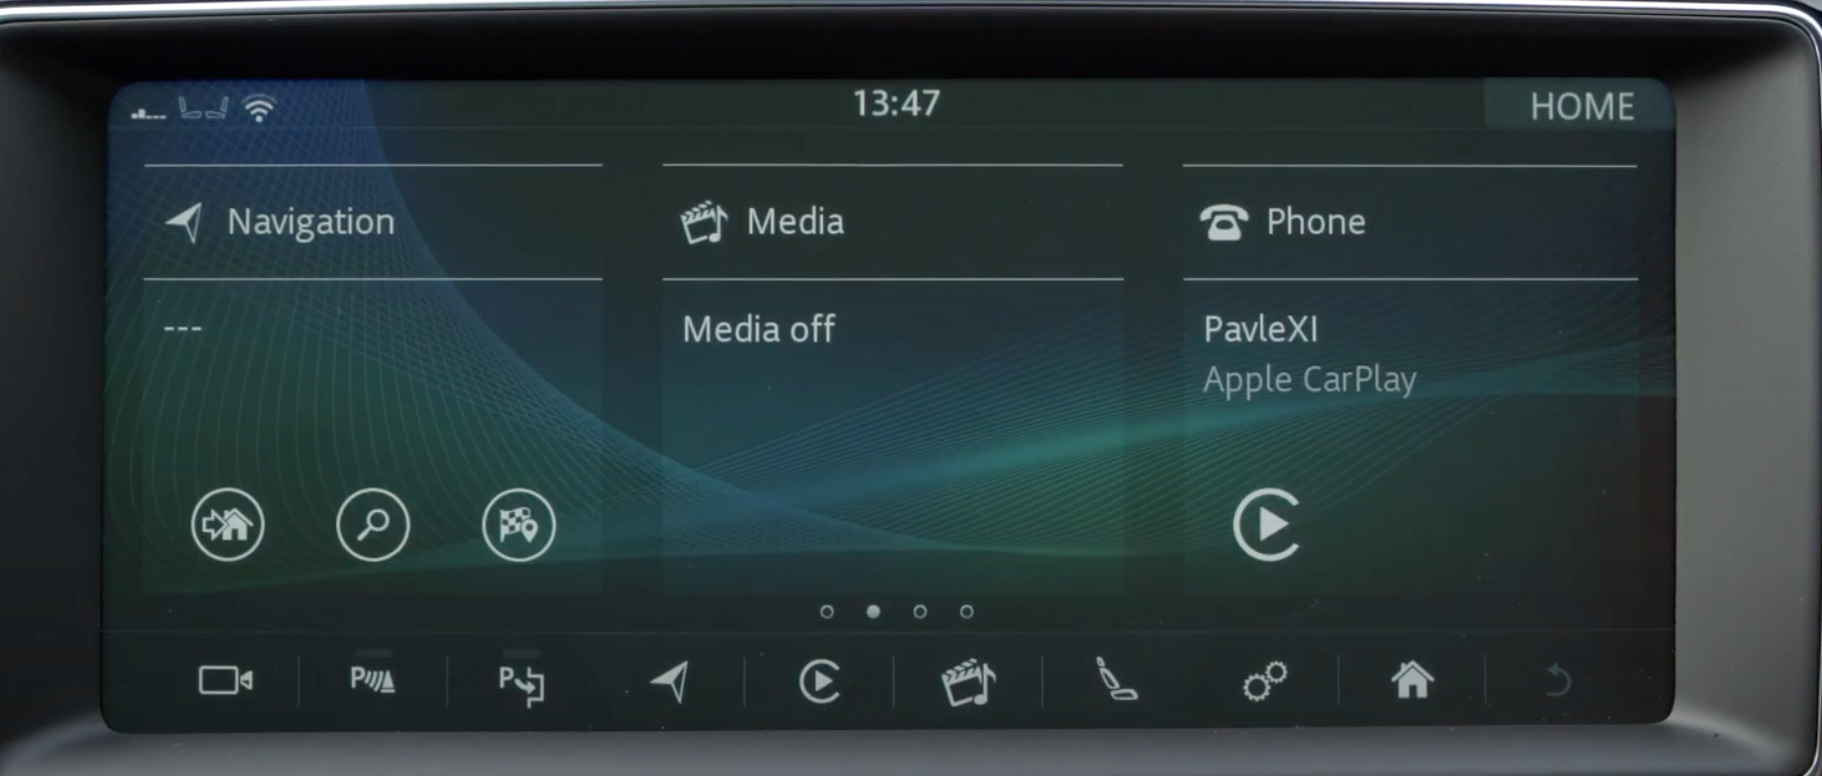 A view of the home screen of the infotainment system with navigation, media and phone